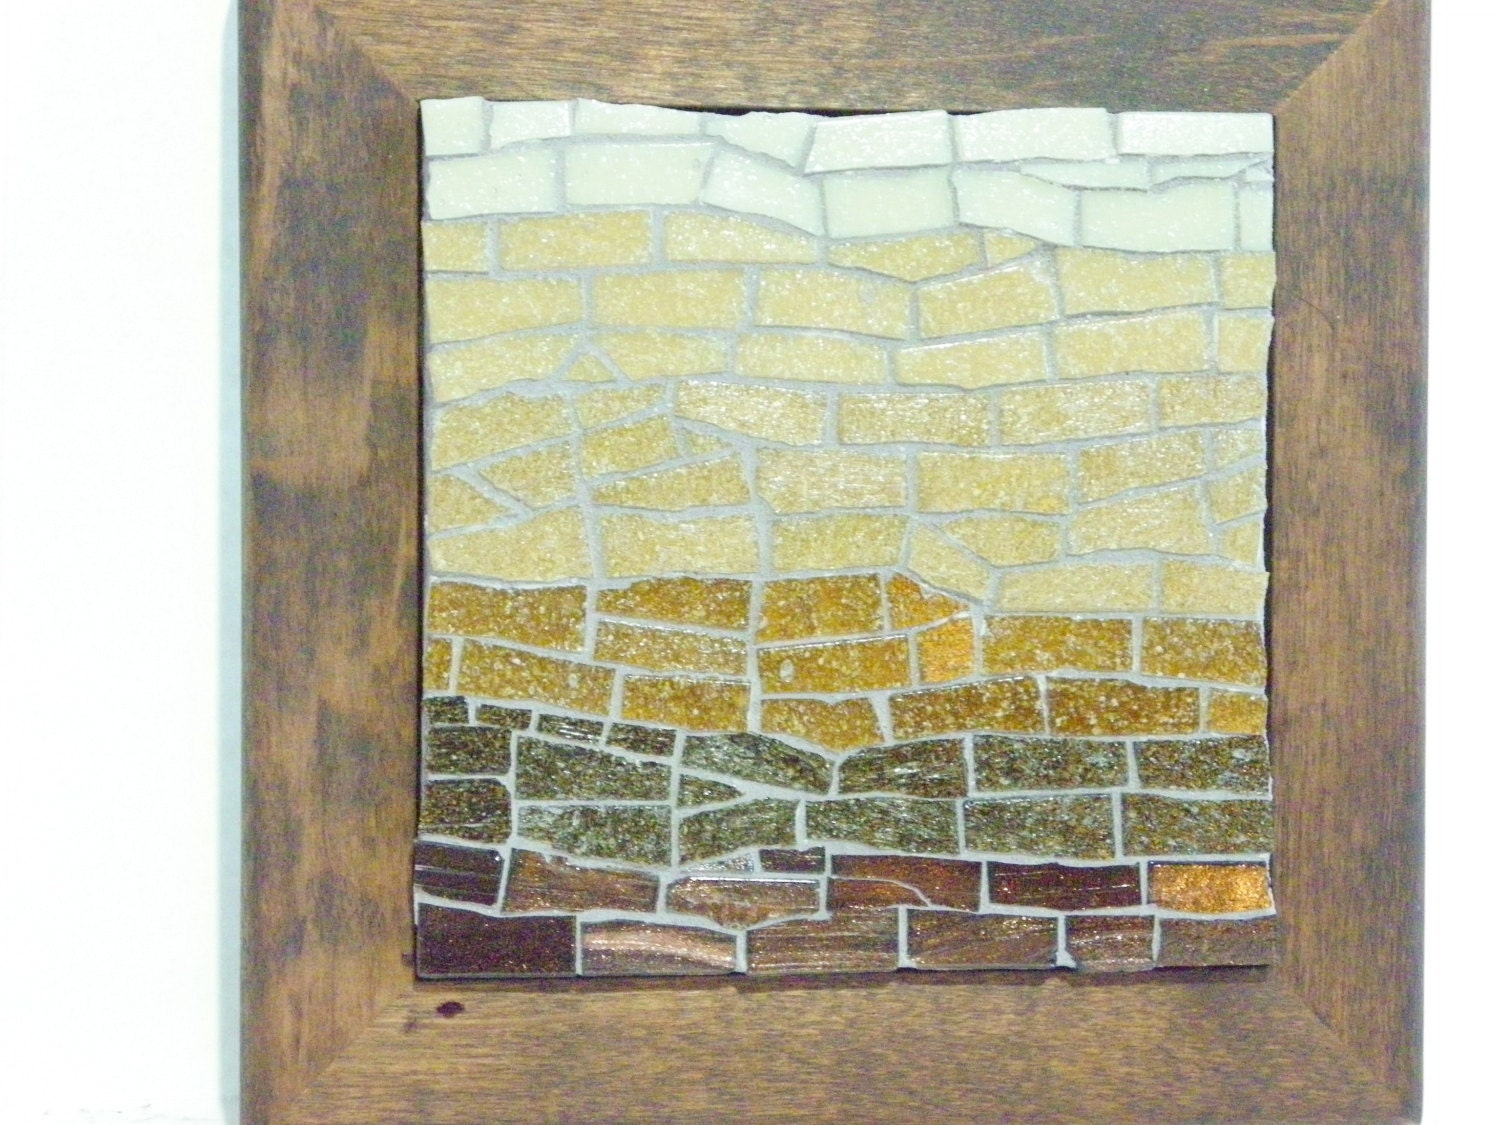 Beautiful Glass Tile Wall Art Image Collection - The Wall Art ...